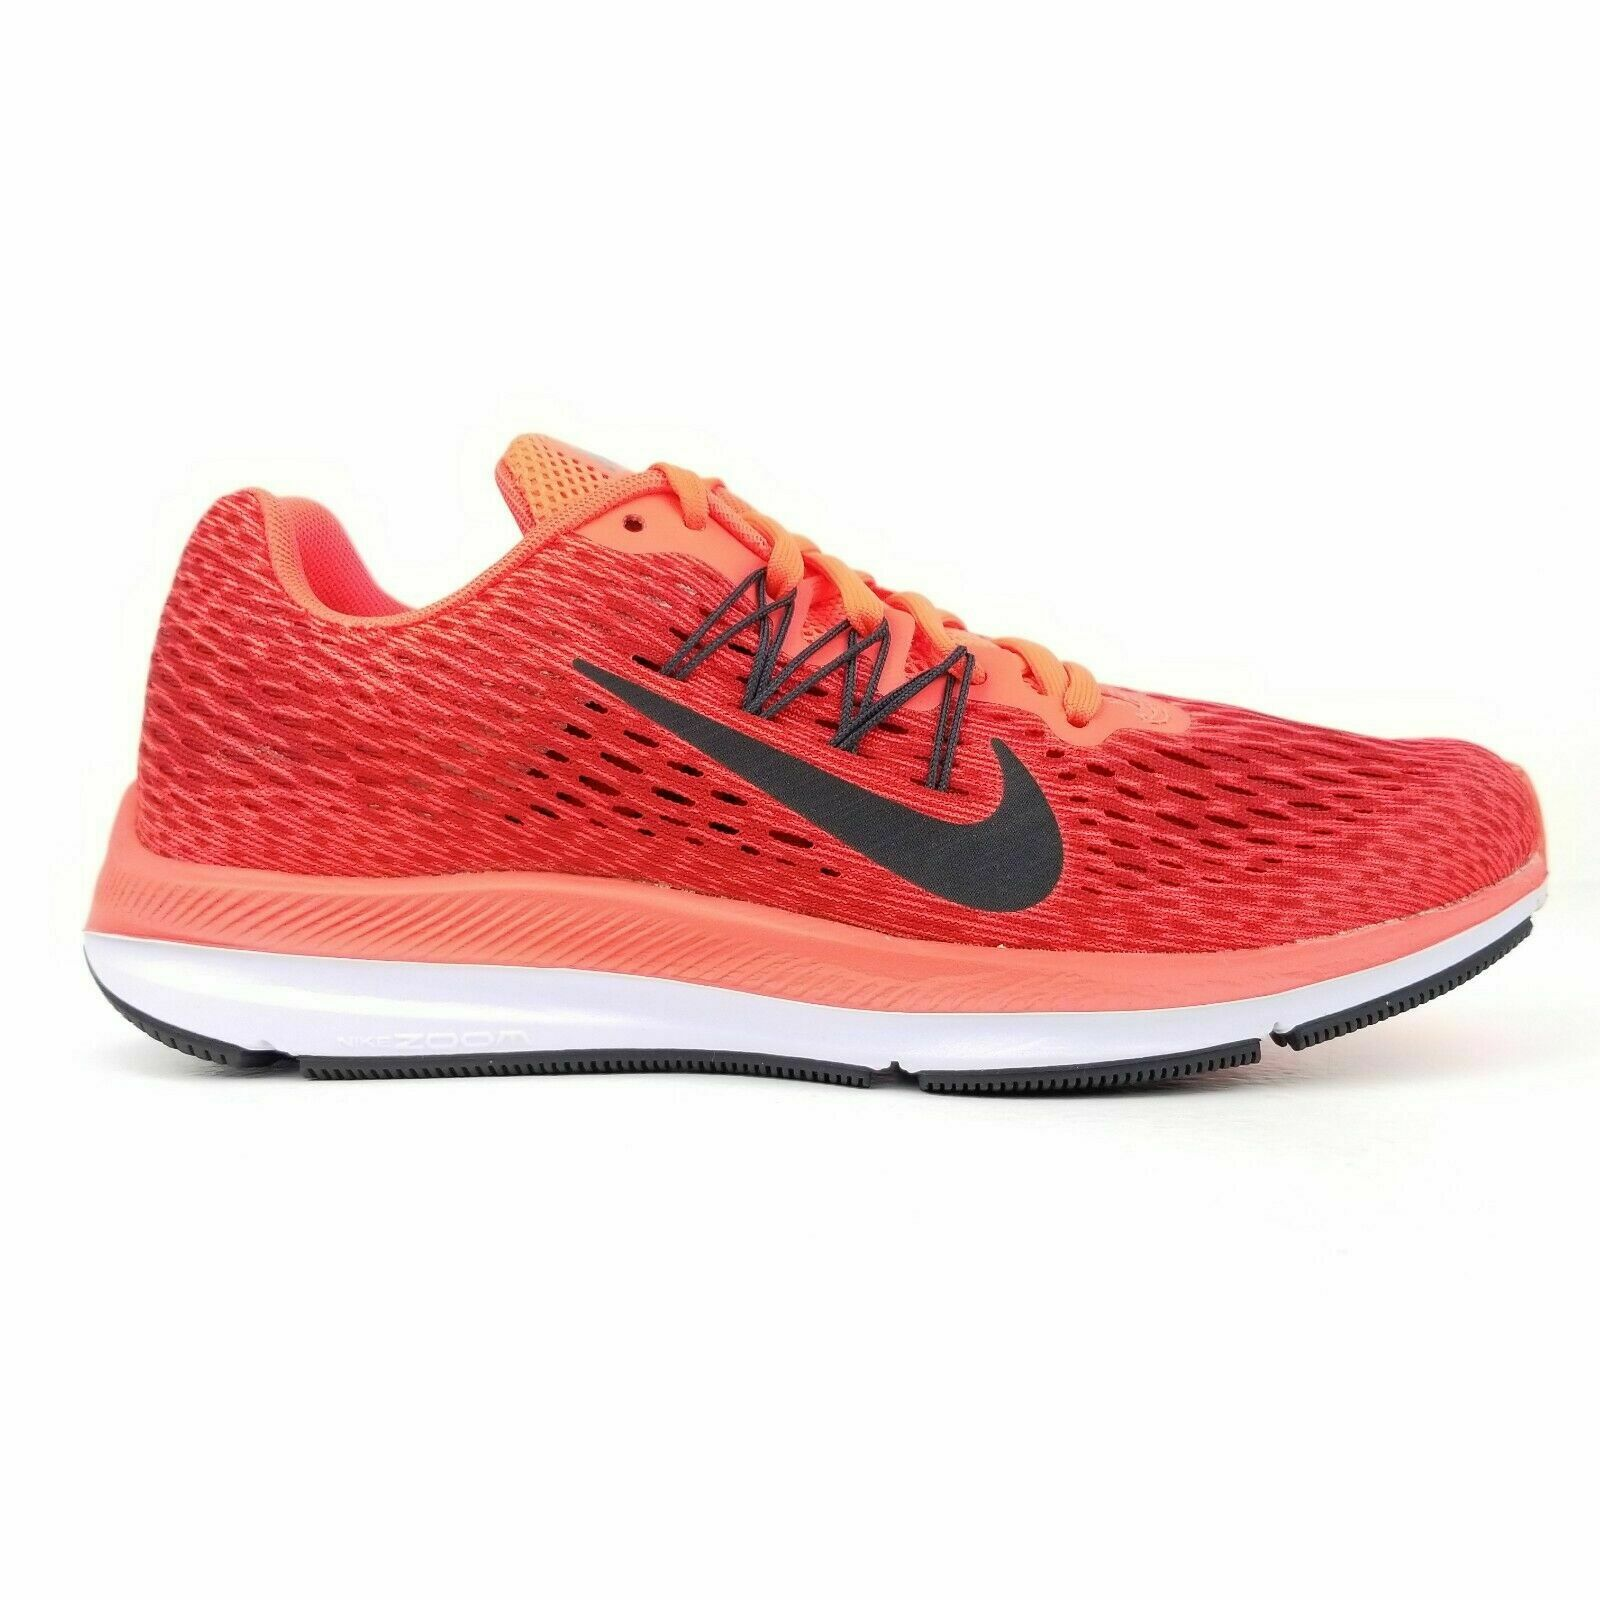 Nike Zoom Winflo 5 Women's Running Shoes AA7414 601 Bright C